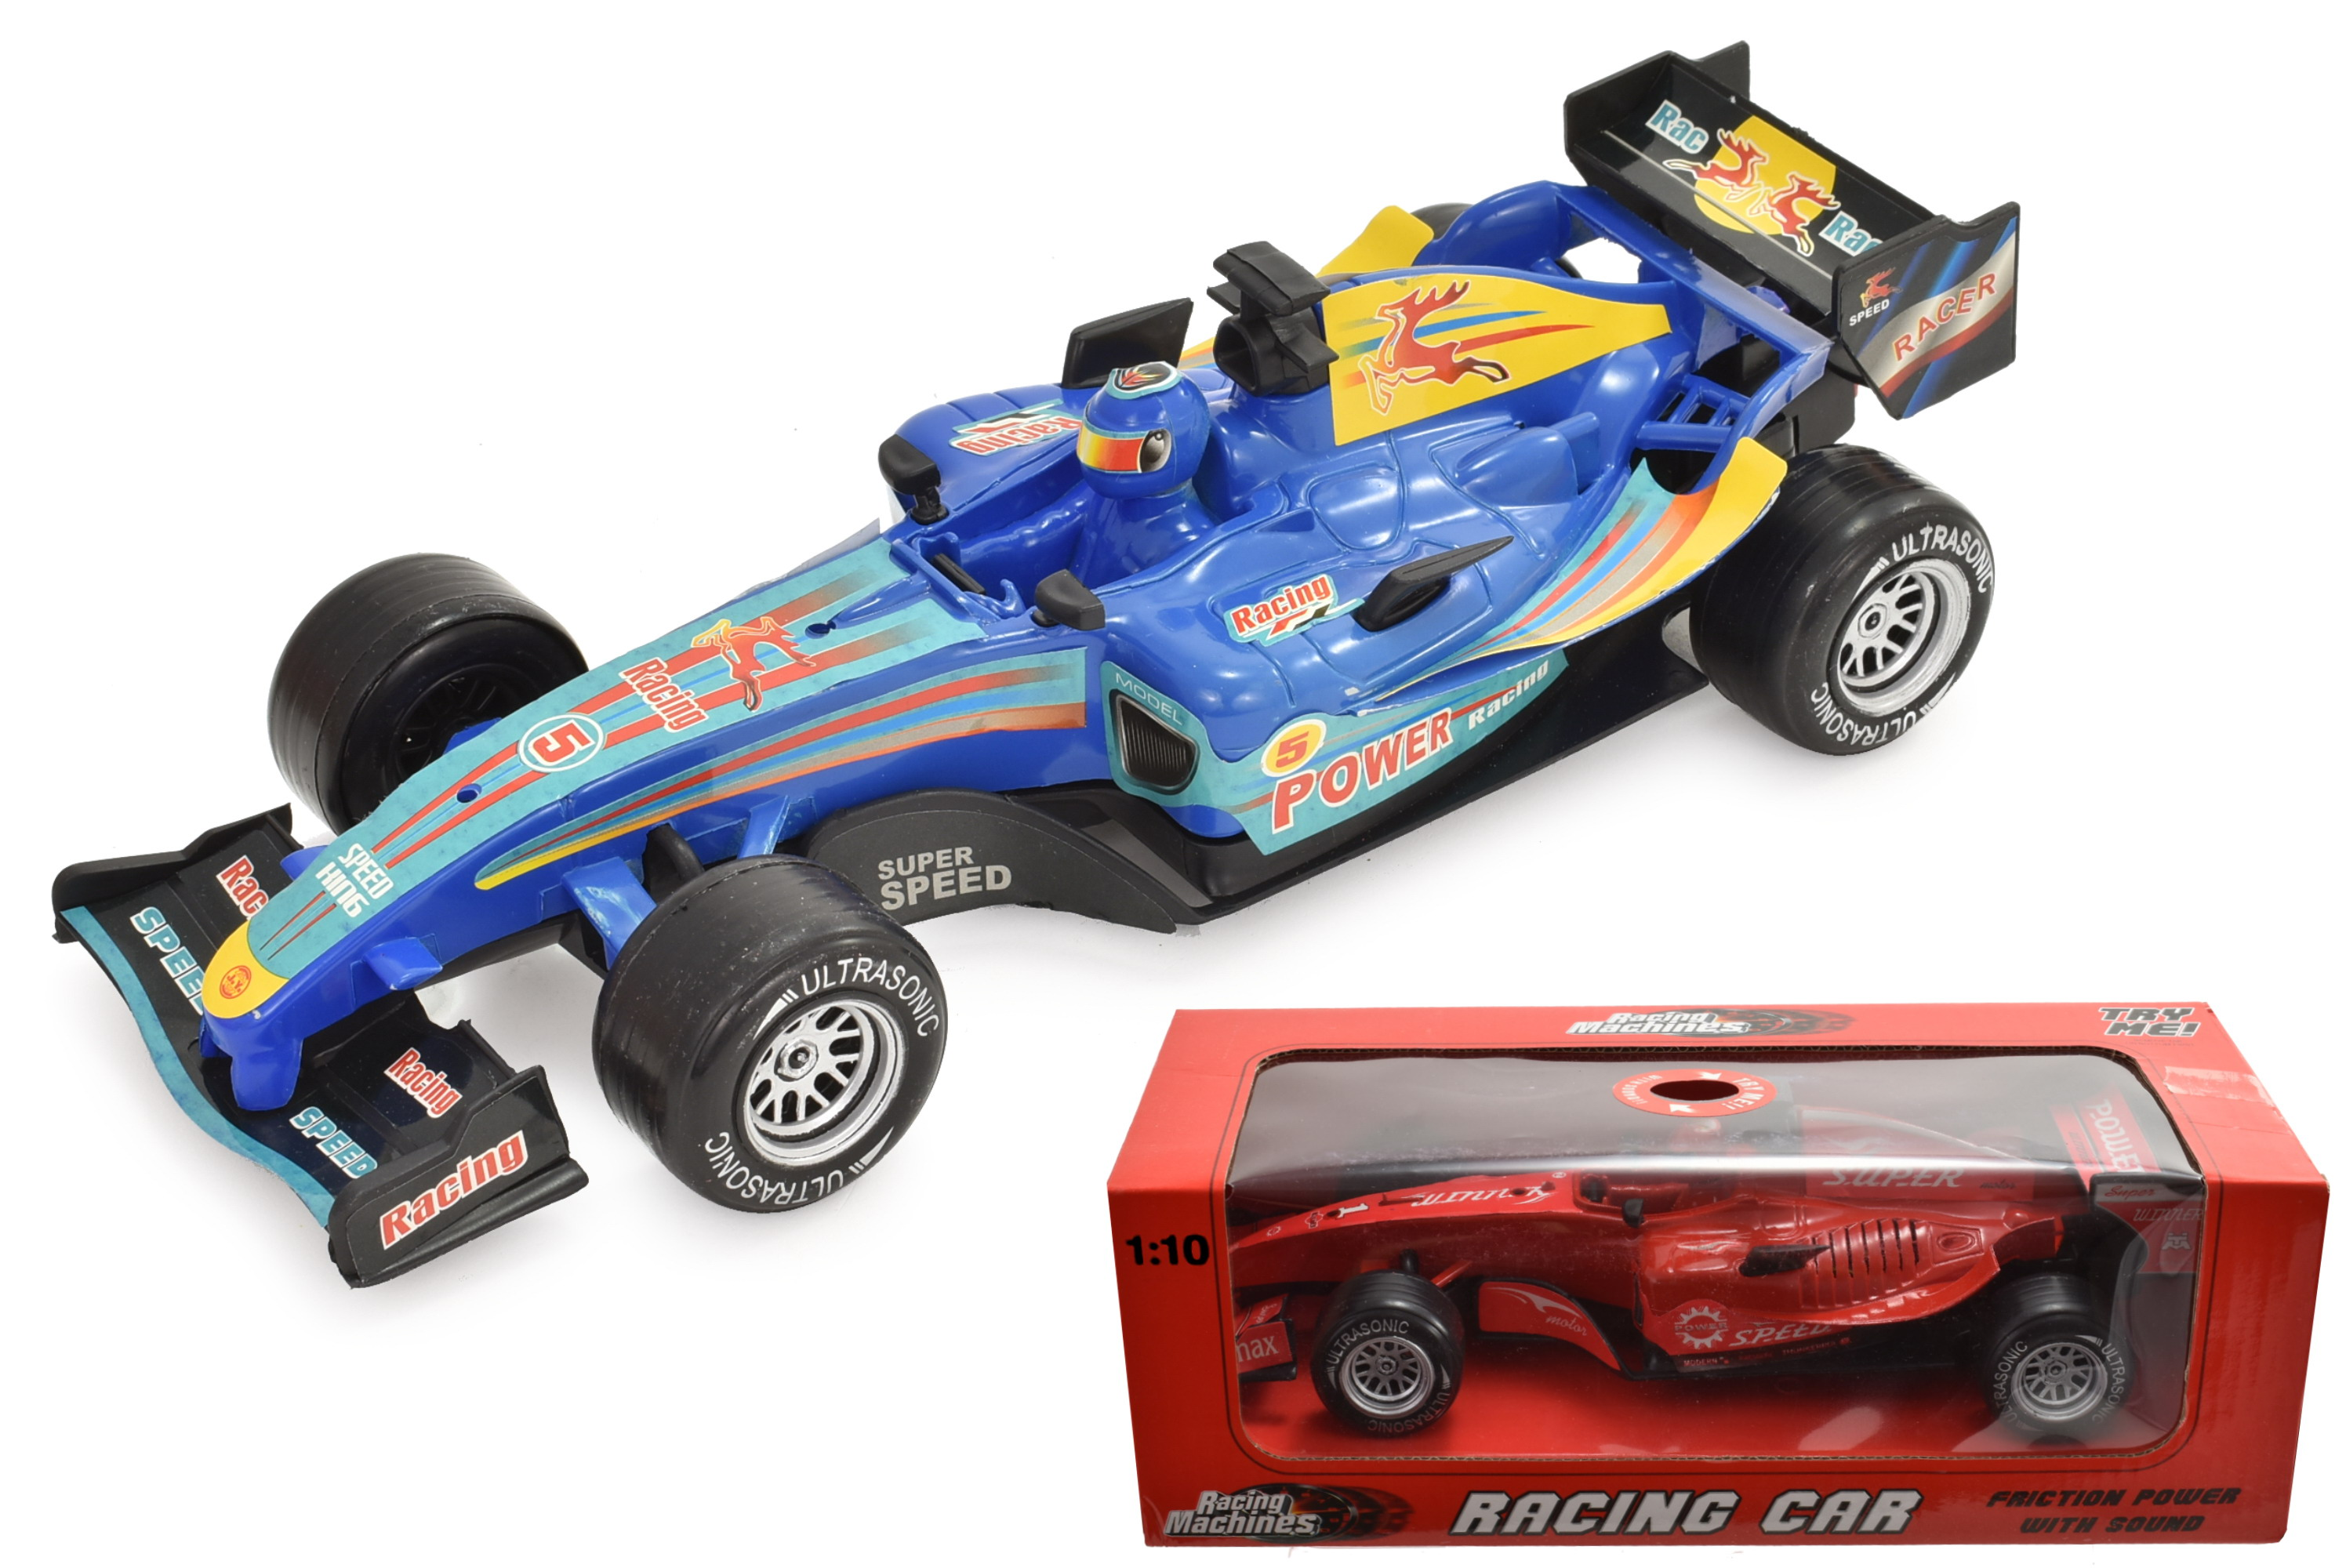 F1 Style Racing Car Toy With Sound Gift Present For Boy Son Grandson Nephew Kid